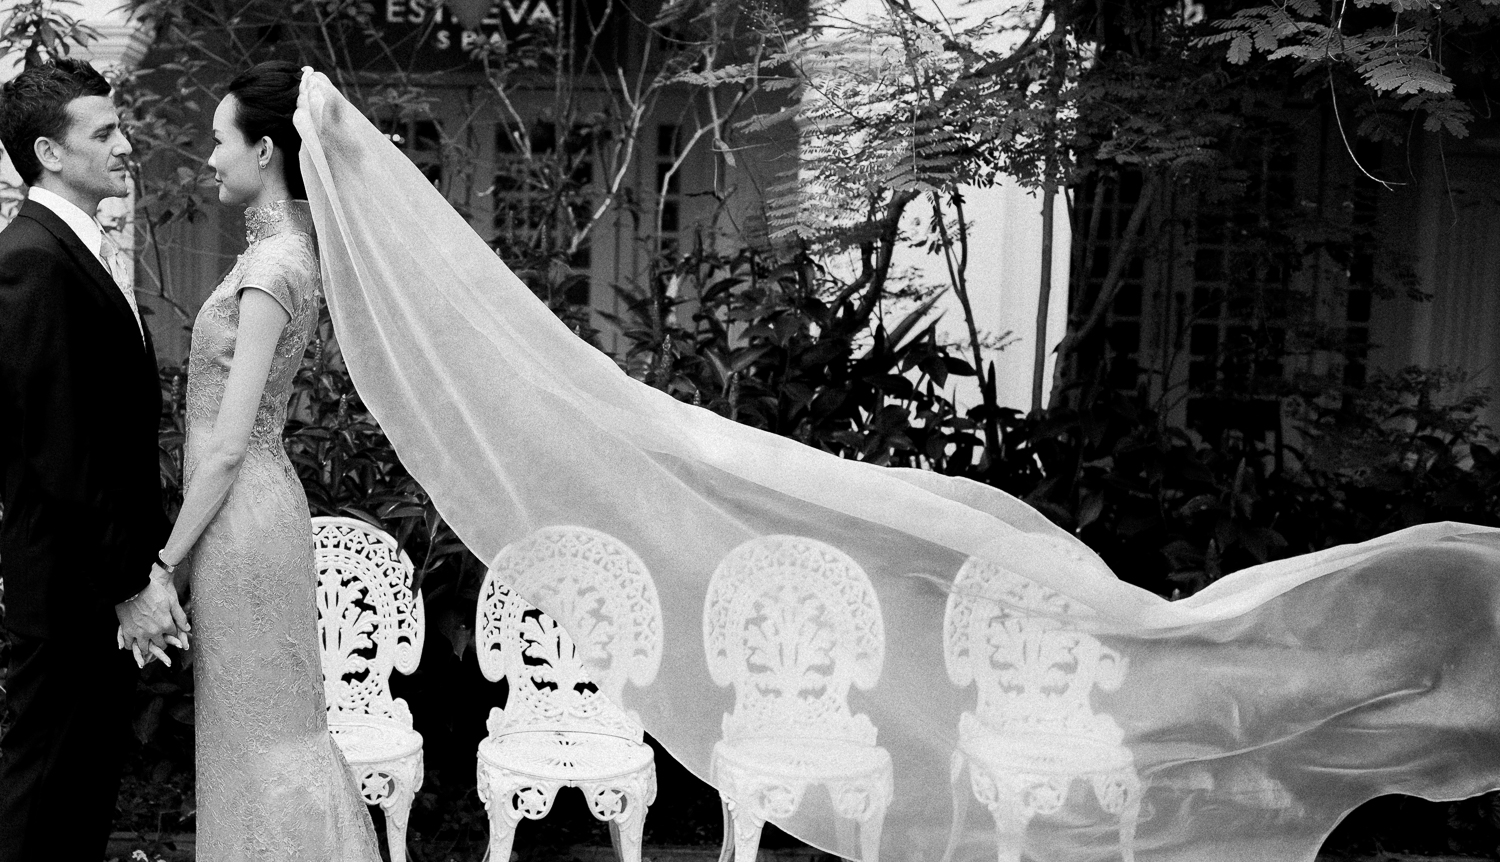 Waving of the veil of the bride